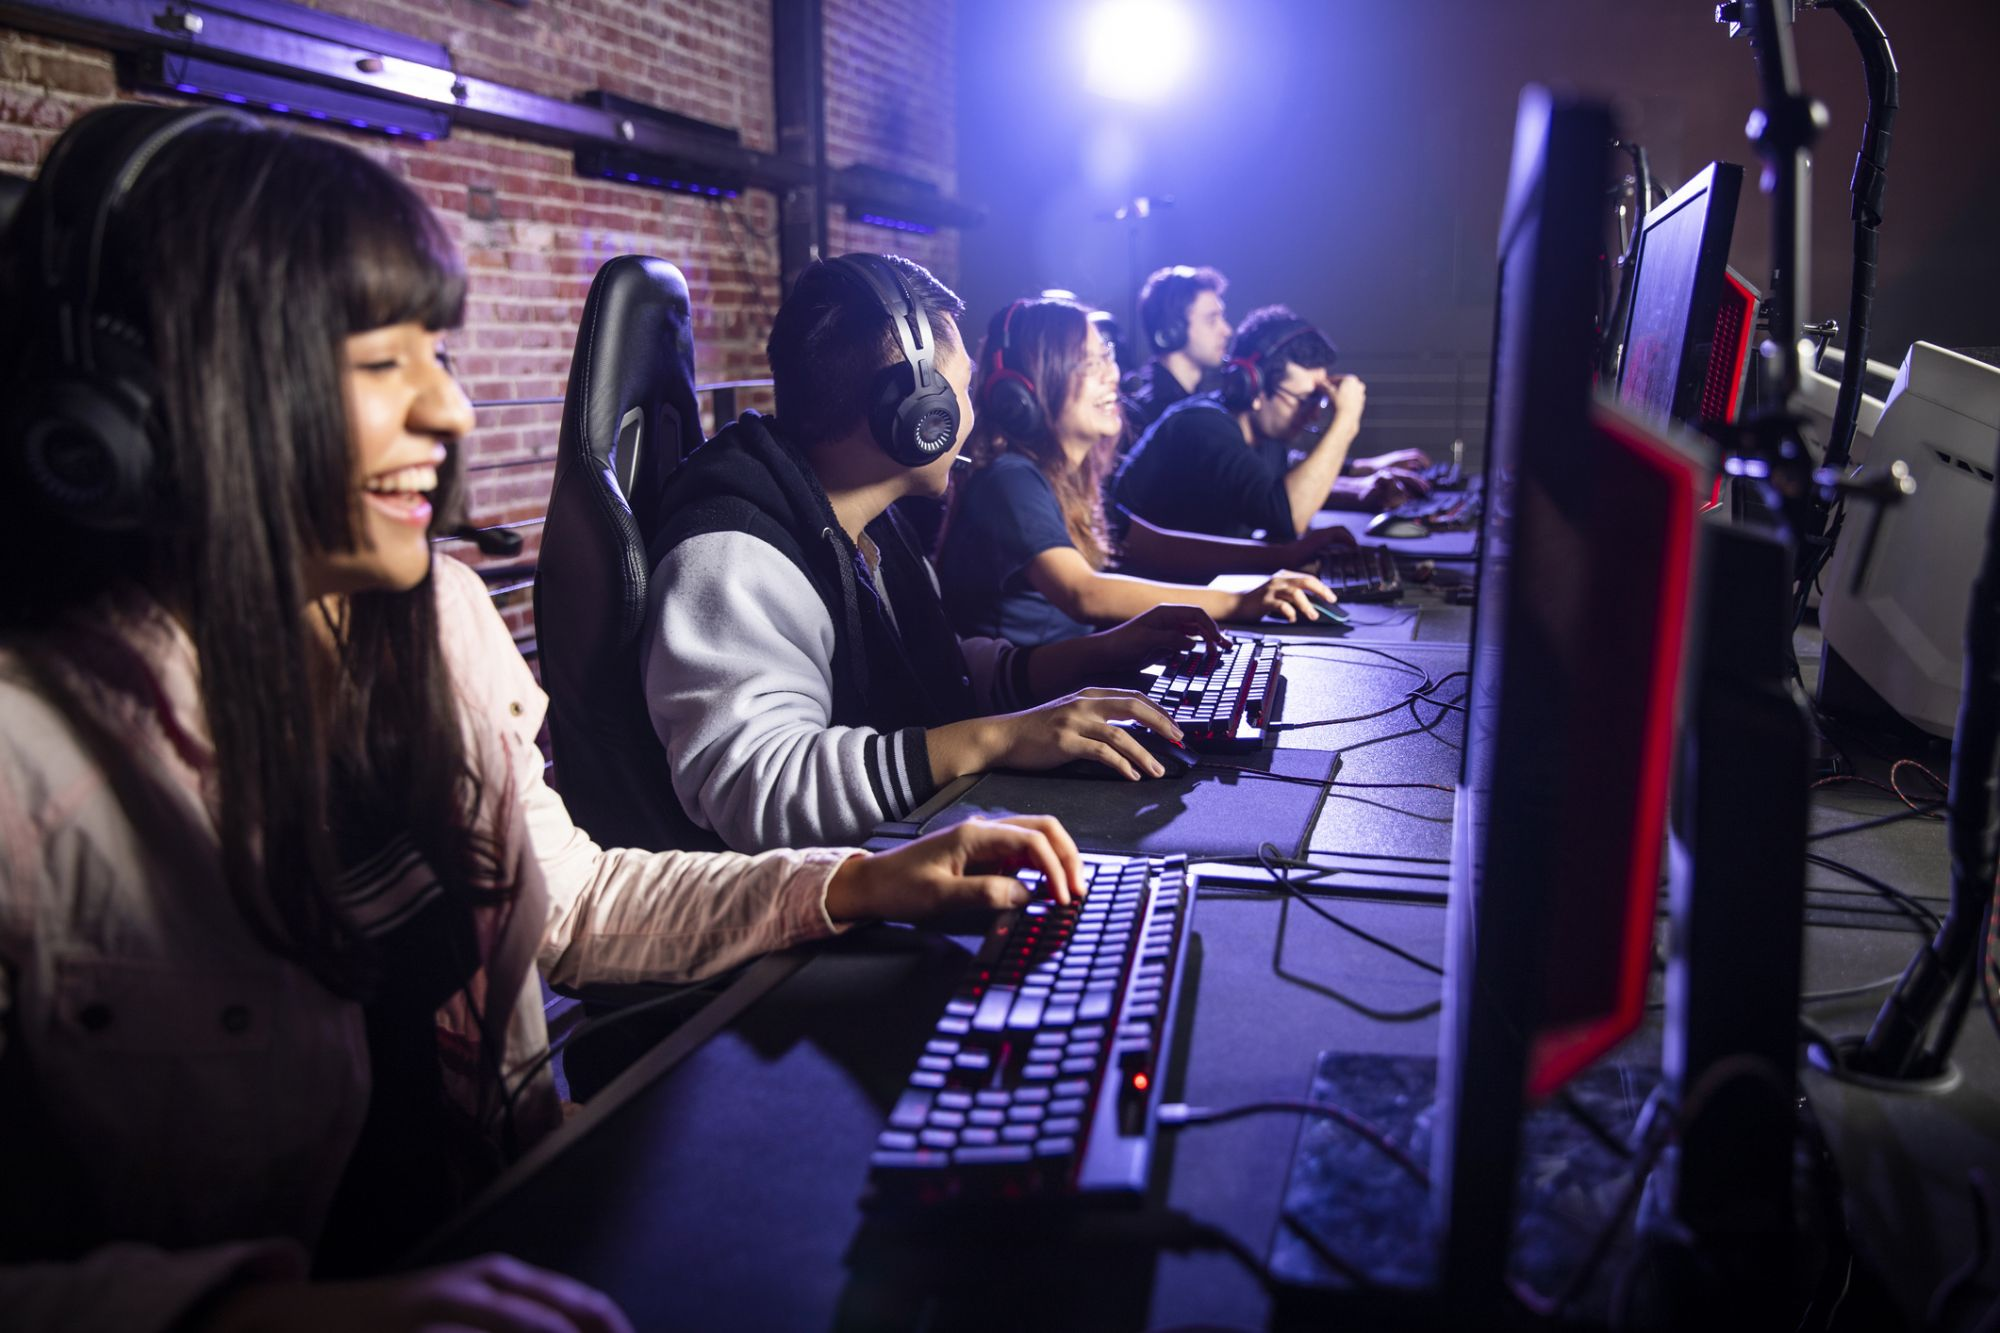 5 Ways Esport Entrepreneurs (and All Other Business Leaders) Can Build An Active Community